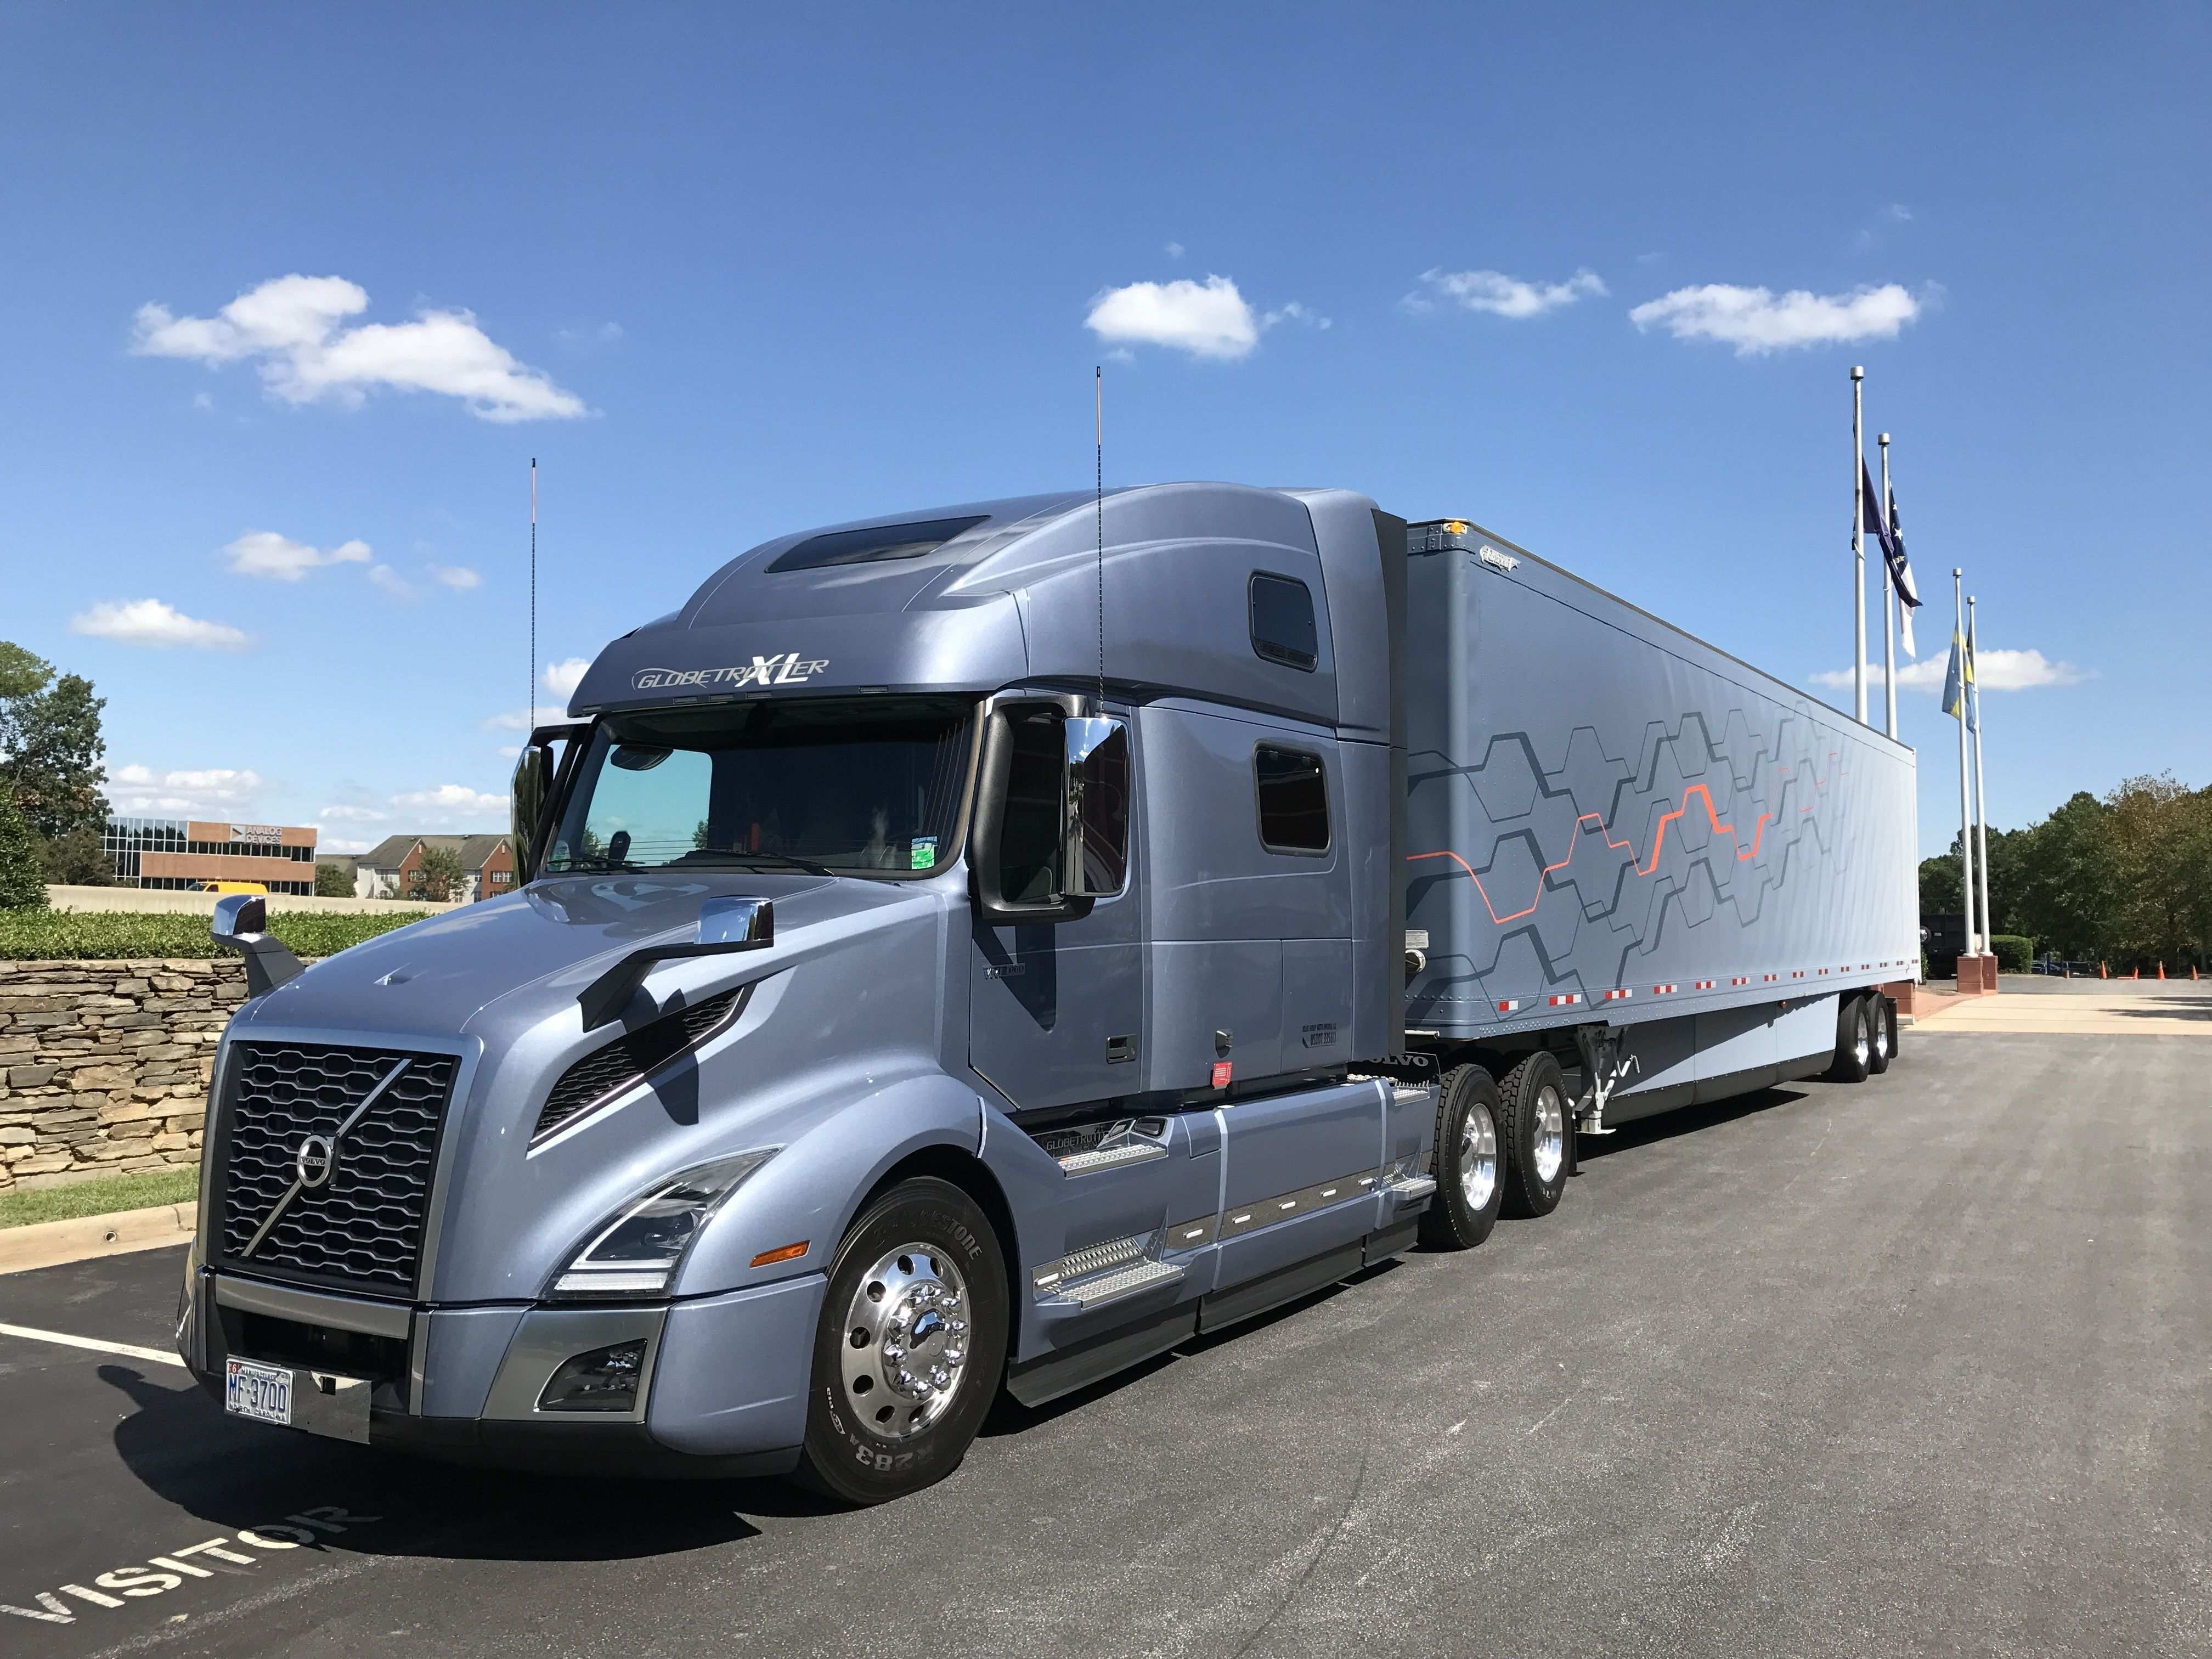 80 Great New 2019 Volvo Vnl 860 For Sale New Engine Release Date by New 2019 Volvo Vnl 860 For Sale New Engine